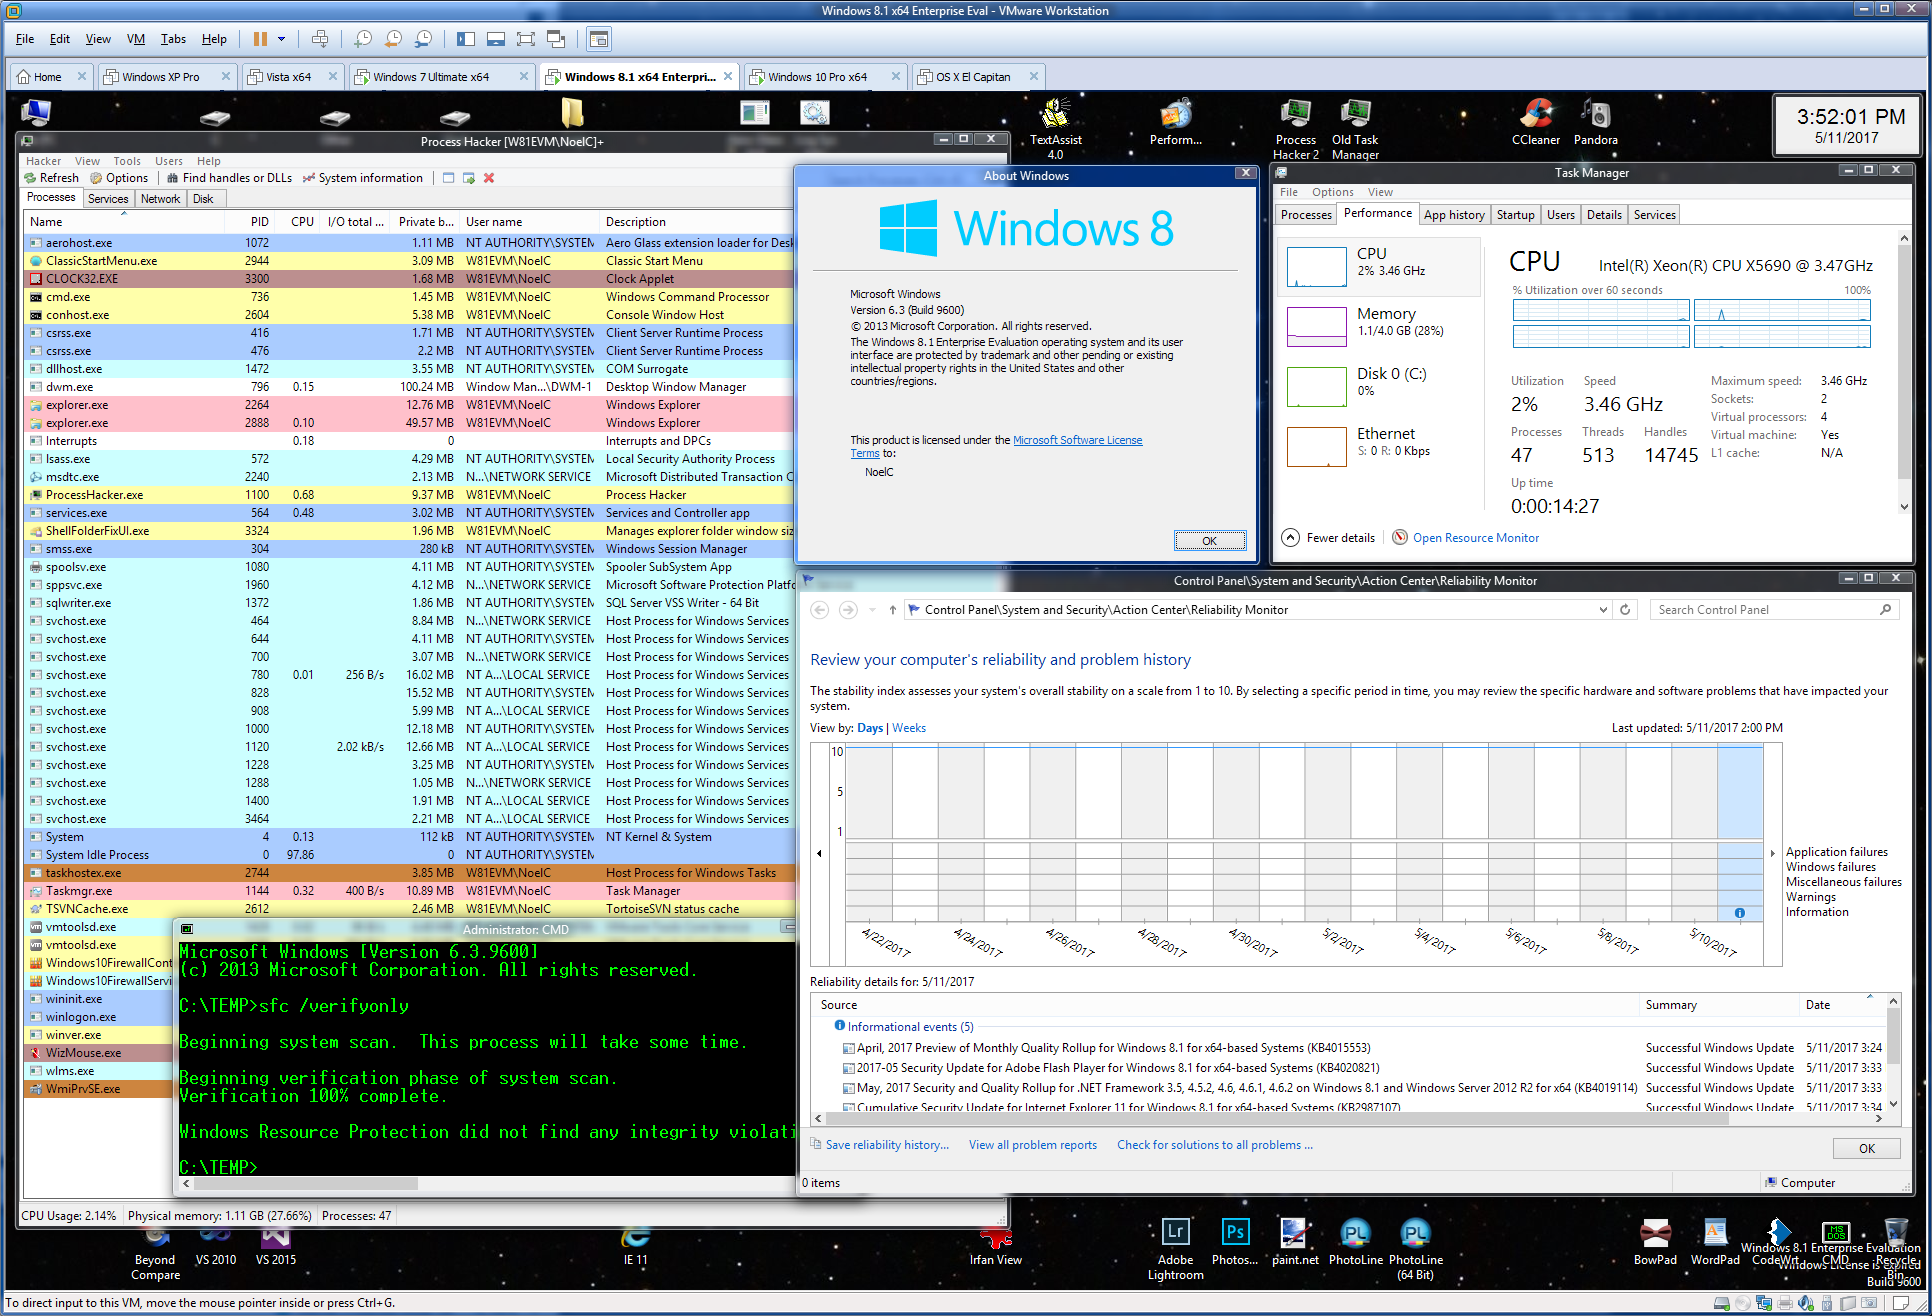 Topic: Patch Tuesday is rolling out @ AskWoody